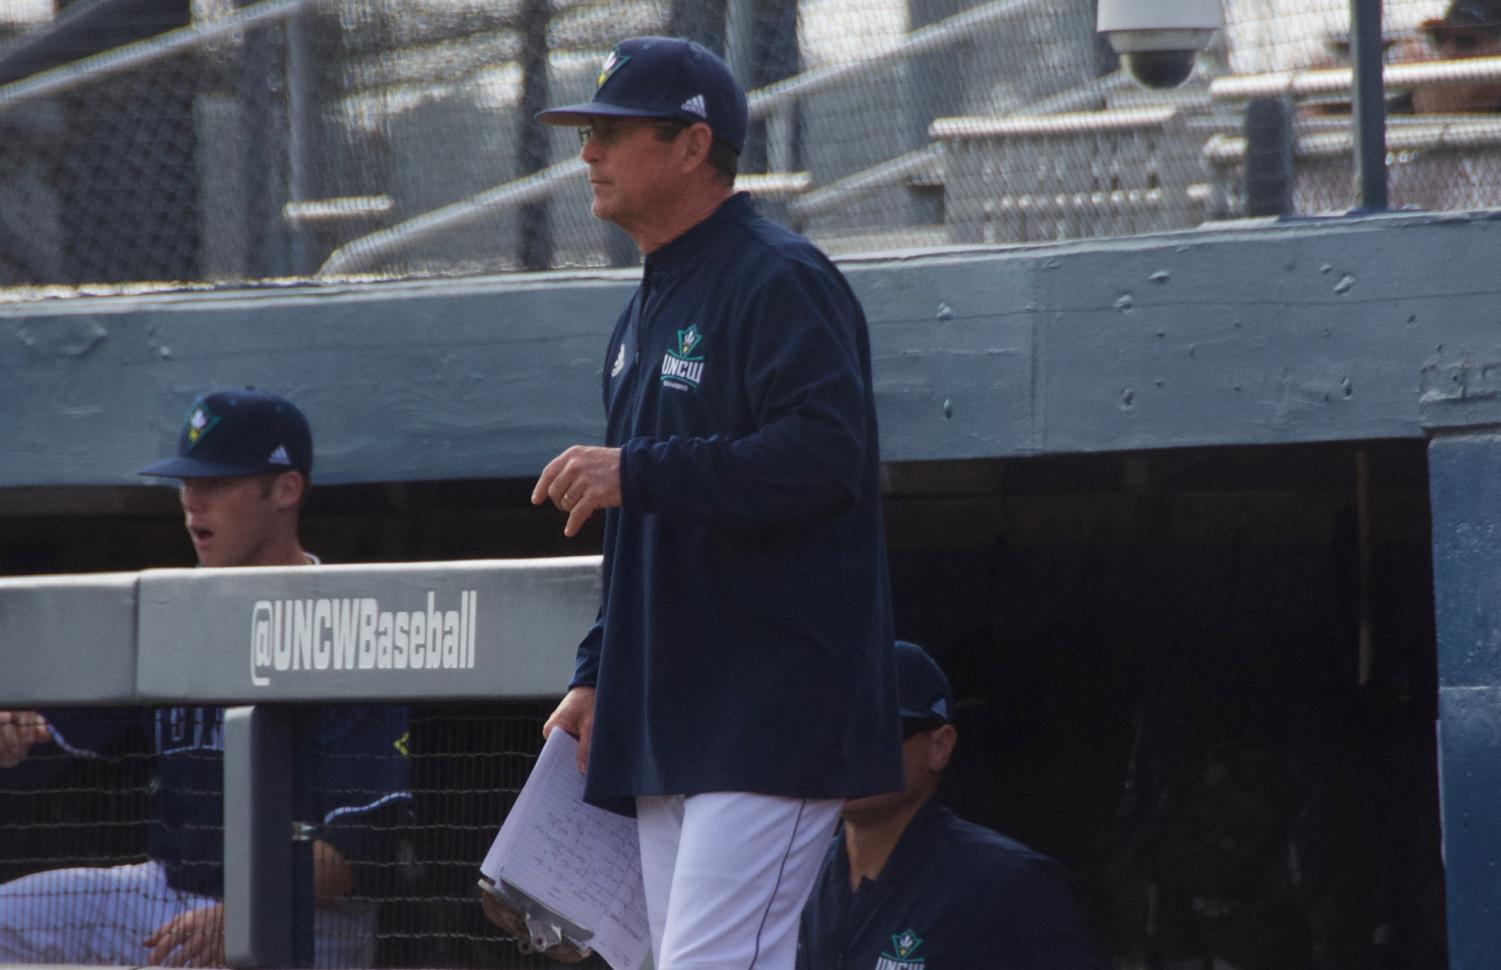 UNCW coach Mark Scalf during the Seahawks' matchup against Valparaiso at Brooks Field on March 3, 2019.